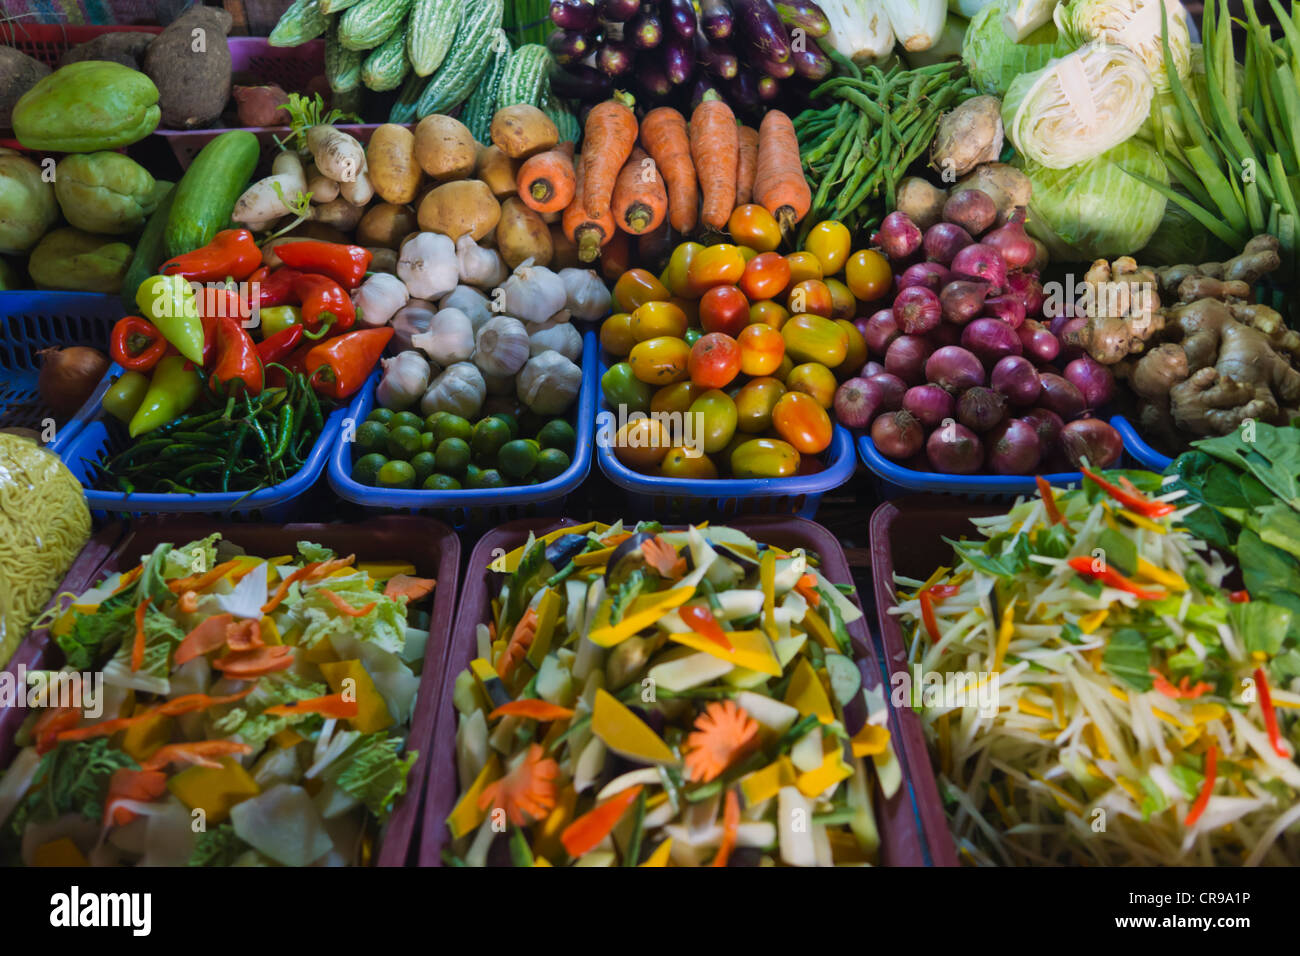 Food Poisoning By Vegetables